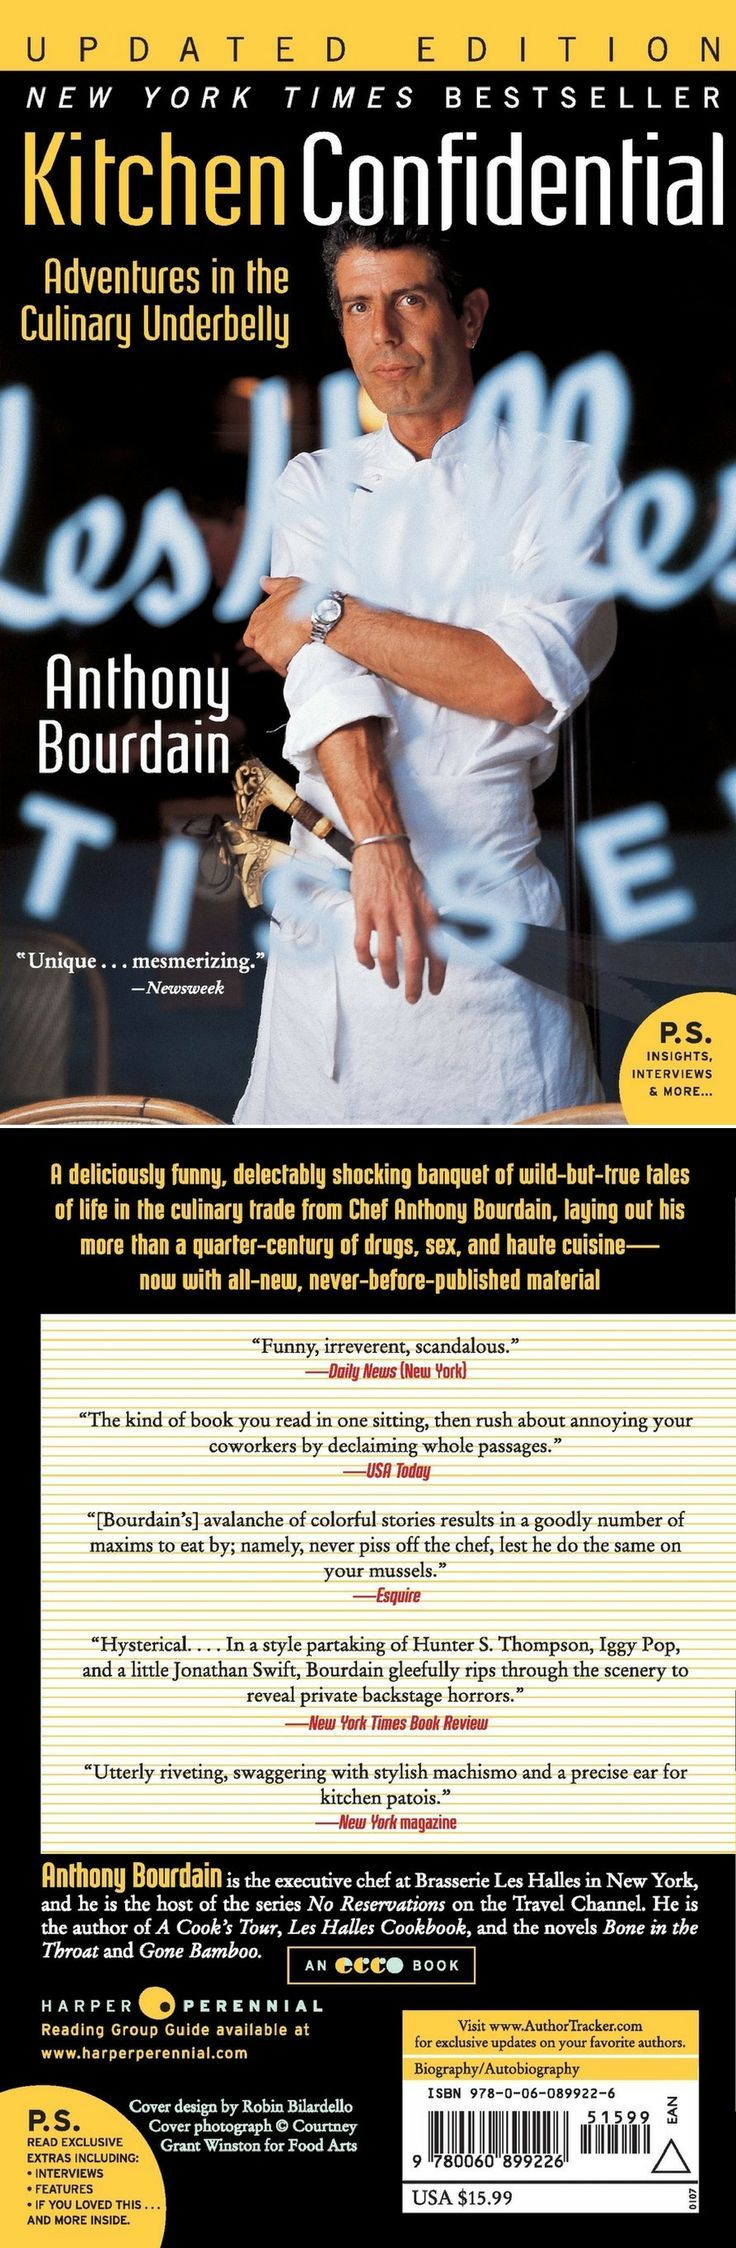 New York Times Bestseller Kitchen Confidential Updated Edition Adventures In The Culinary Underbelly P S B Kitchen Confidential Adventure Anthony Bourdain